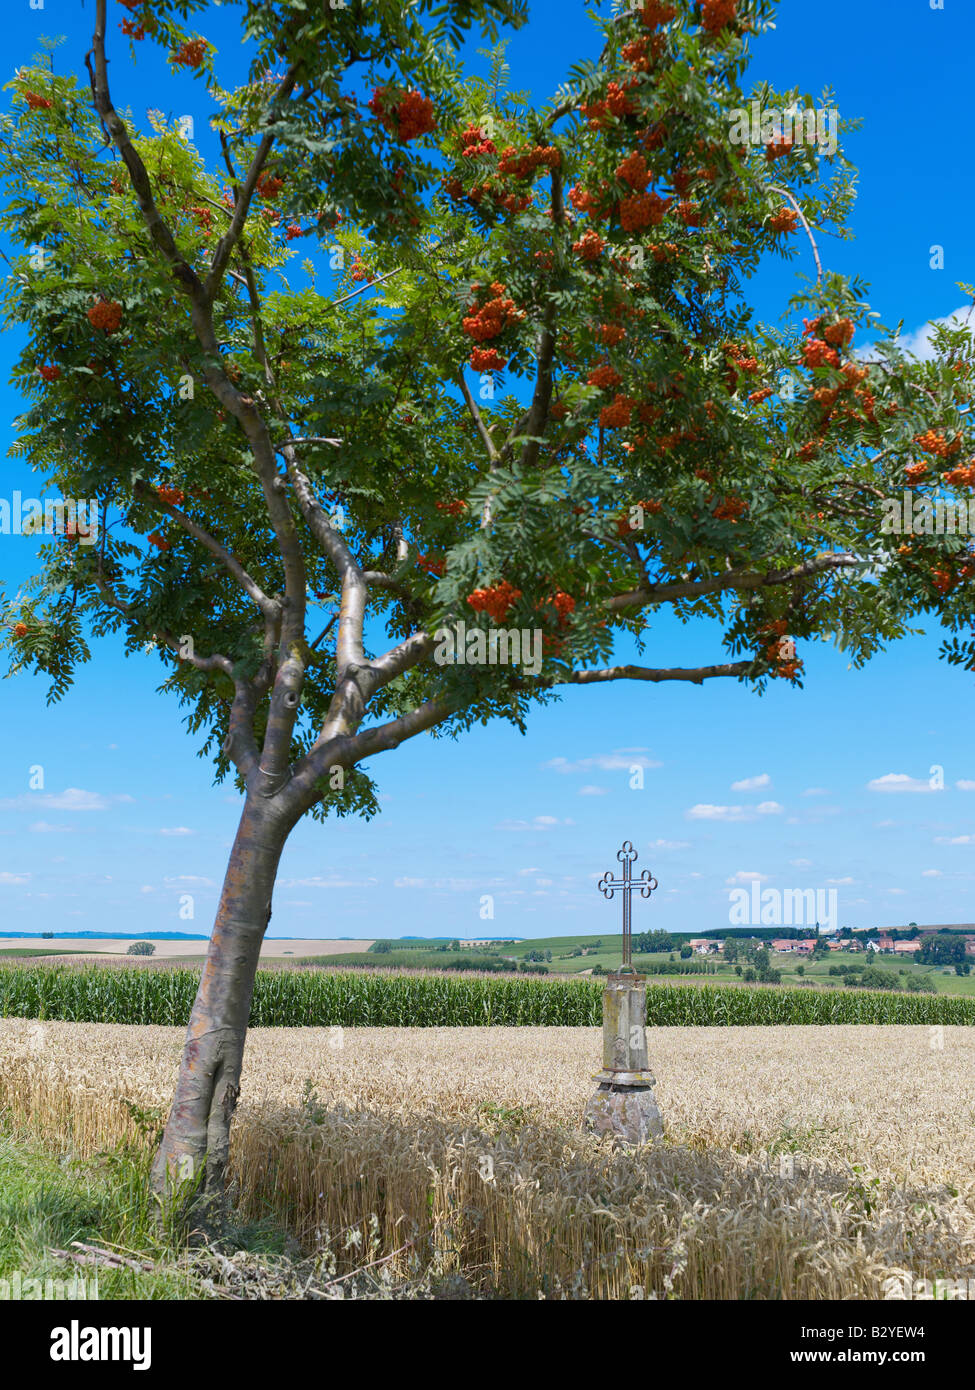 ROWAN TREE WITH BERRIES AND WROUGHT IRON CROSS IN WHEAT FIELD ALSACE FRANCE - Stock Image